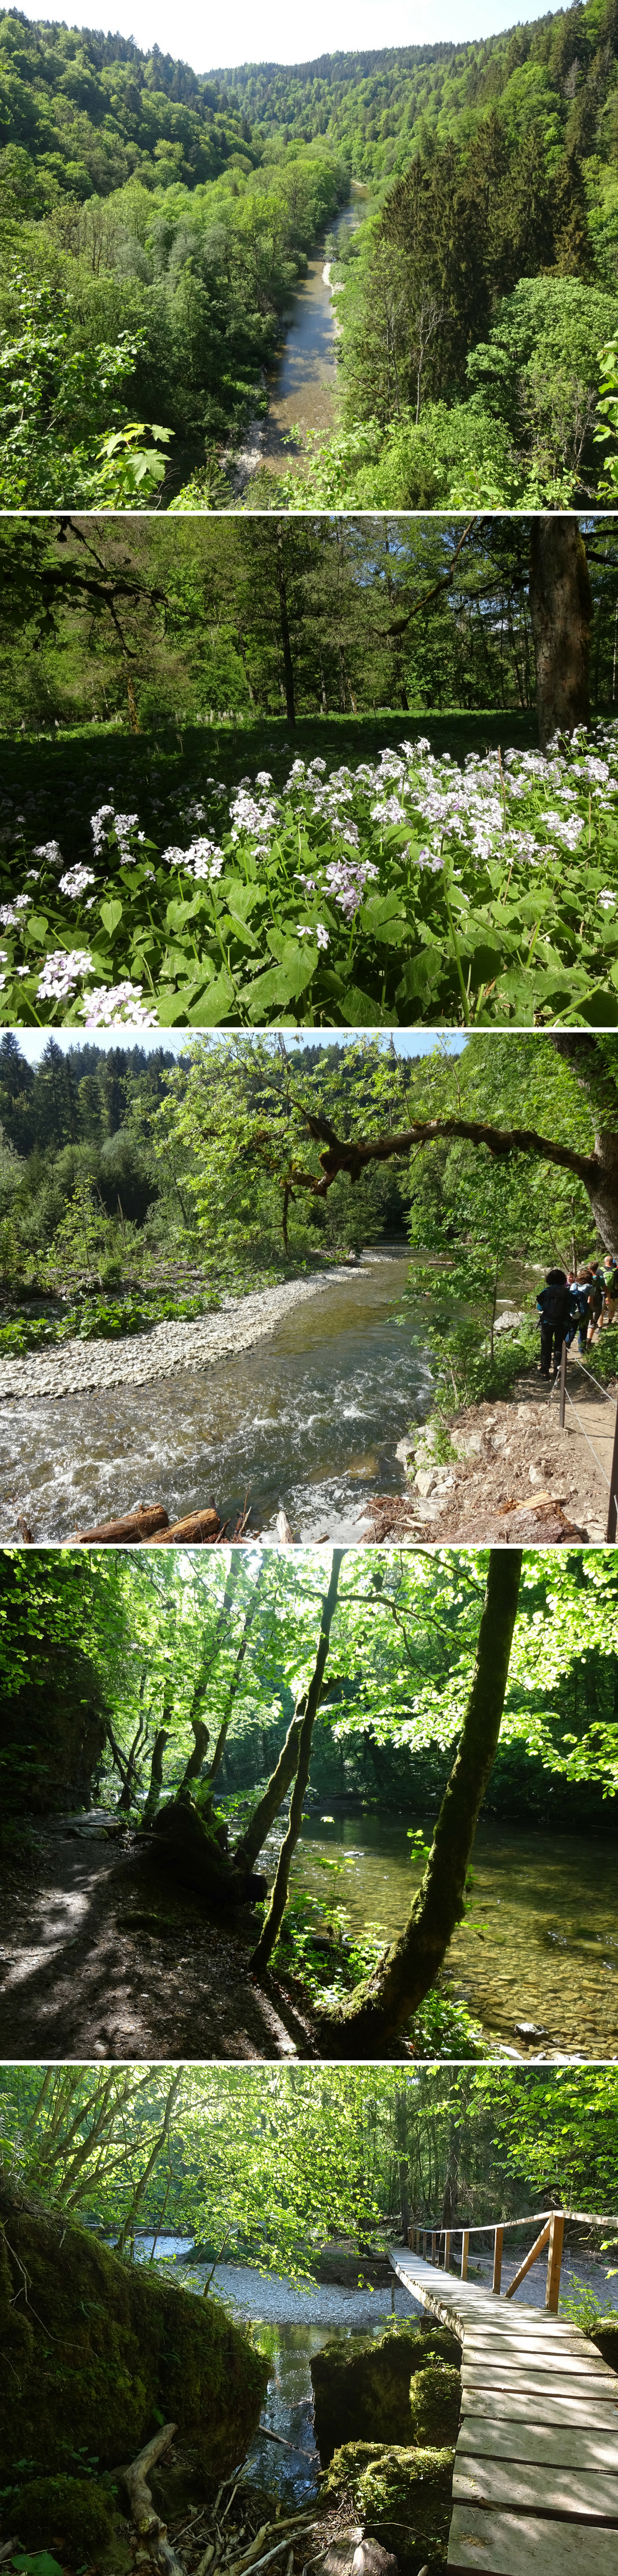 Eldorado for nature lovers: Wutach gorge